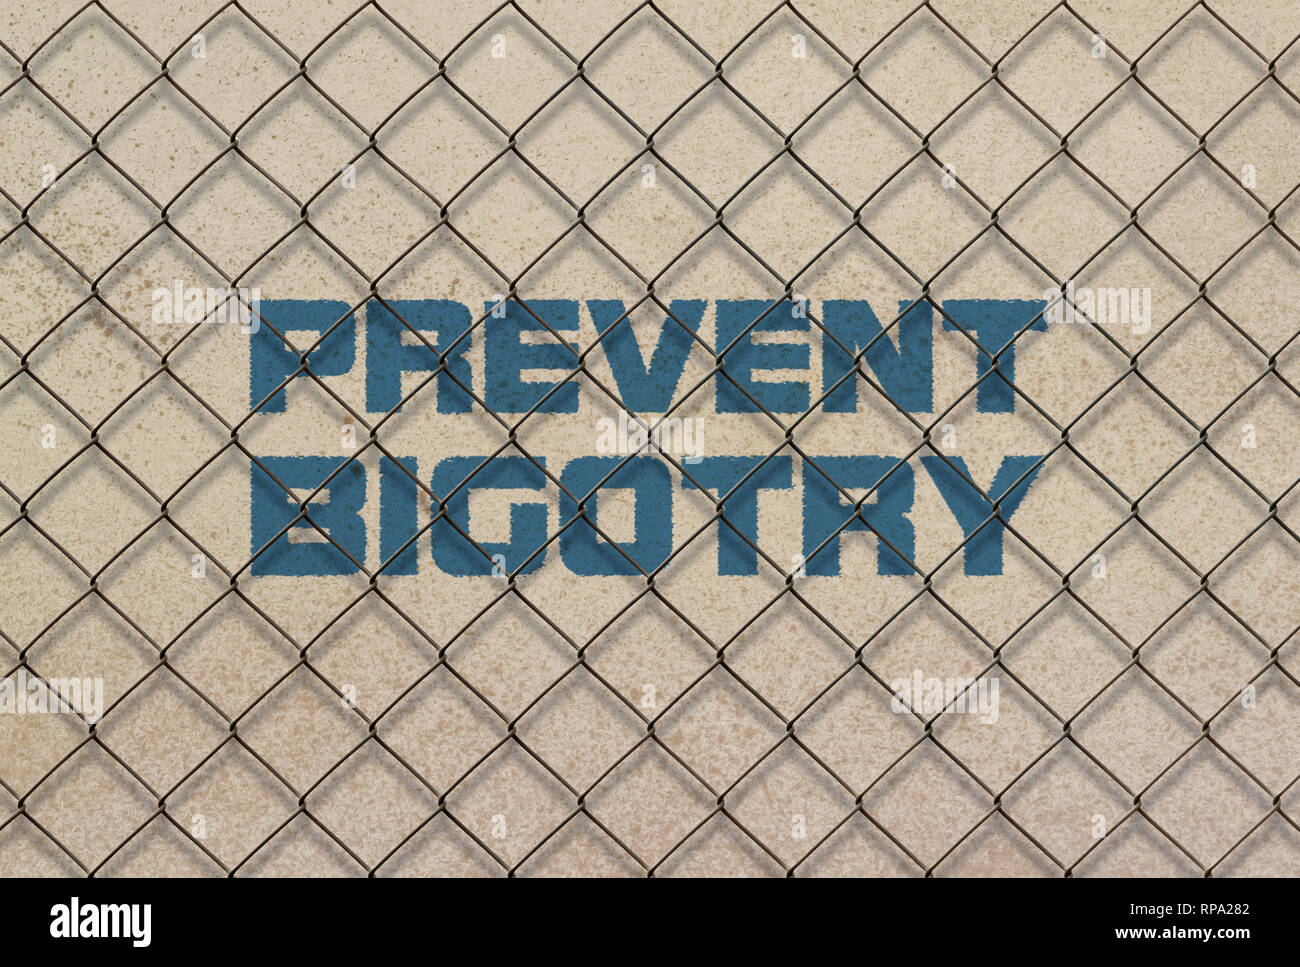 Text Prevent Bigotry written in blue under a wire mesh - Stock Image